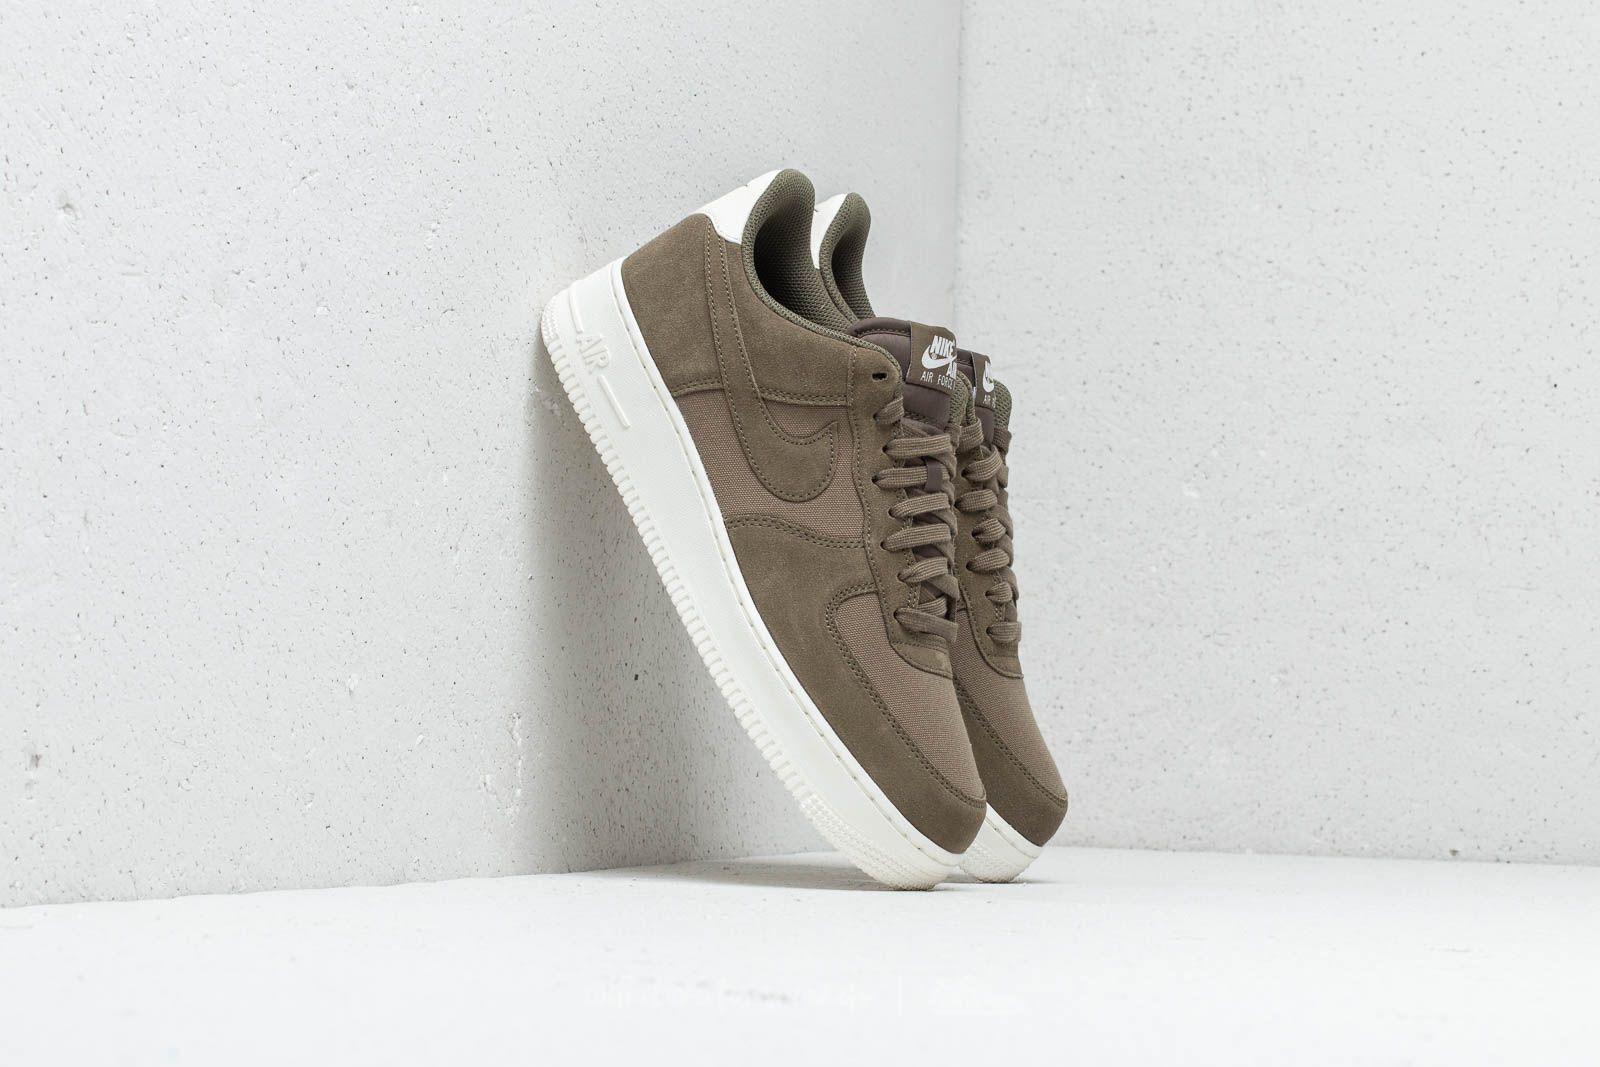 meet 87421 5a948 Nike Air Force 1  07 Suede. Medium Olive  Medium Olive-Sail